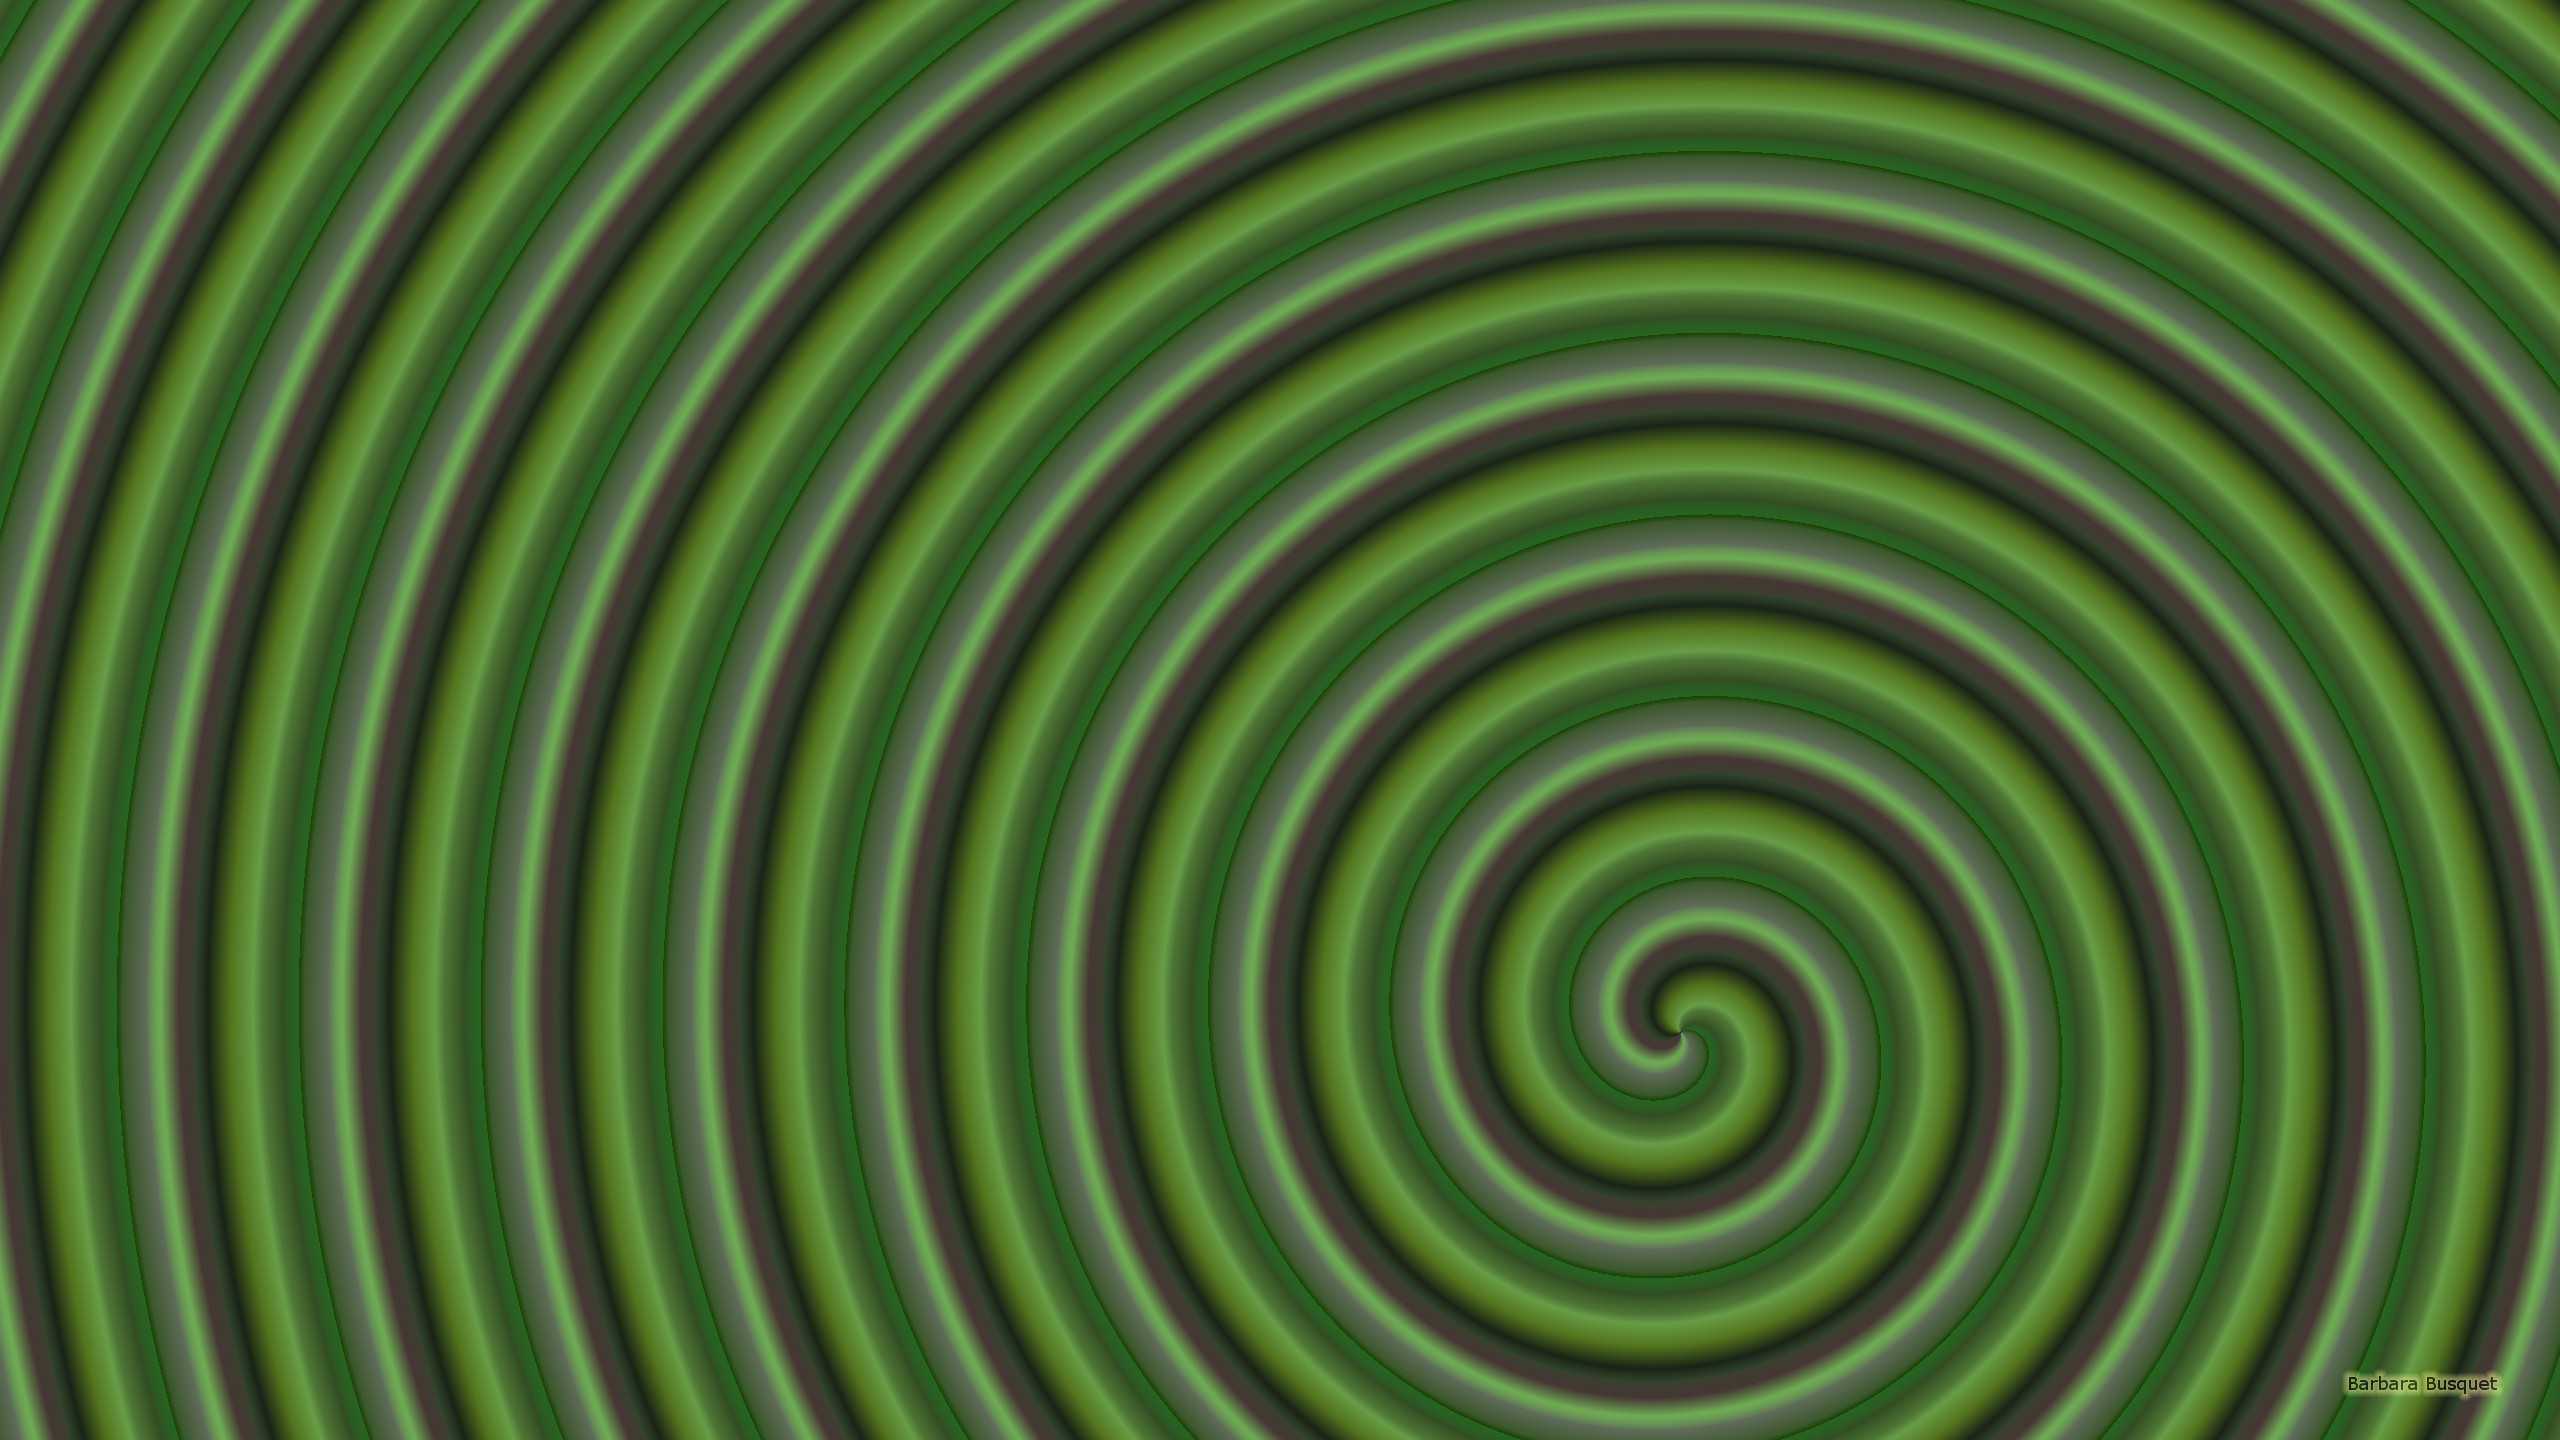 Spiral pattern wallpaper in the color green.